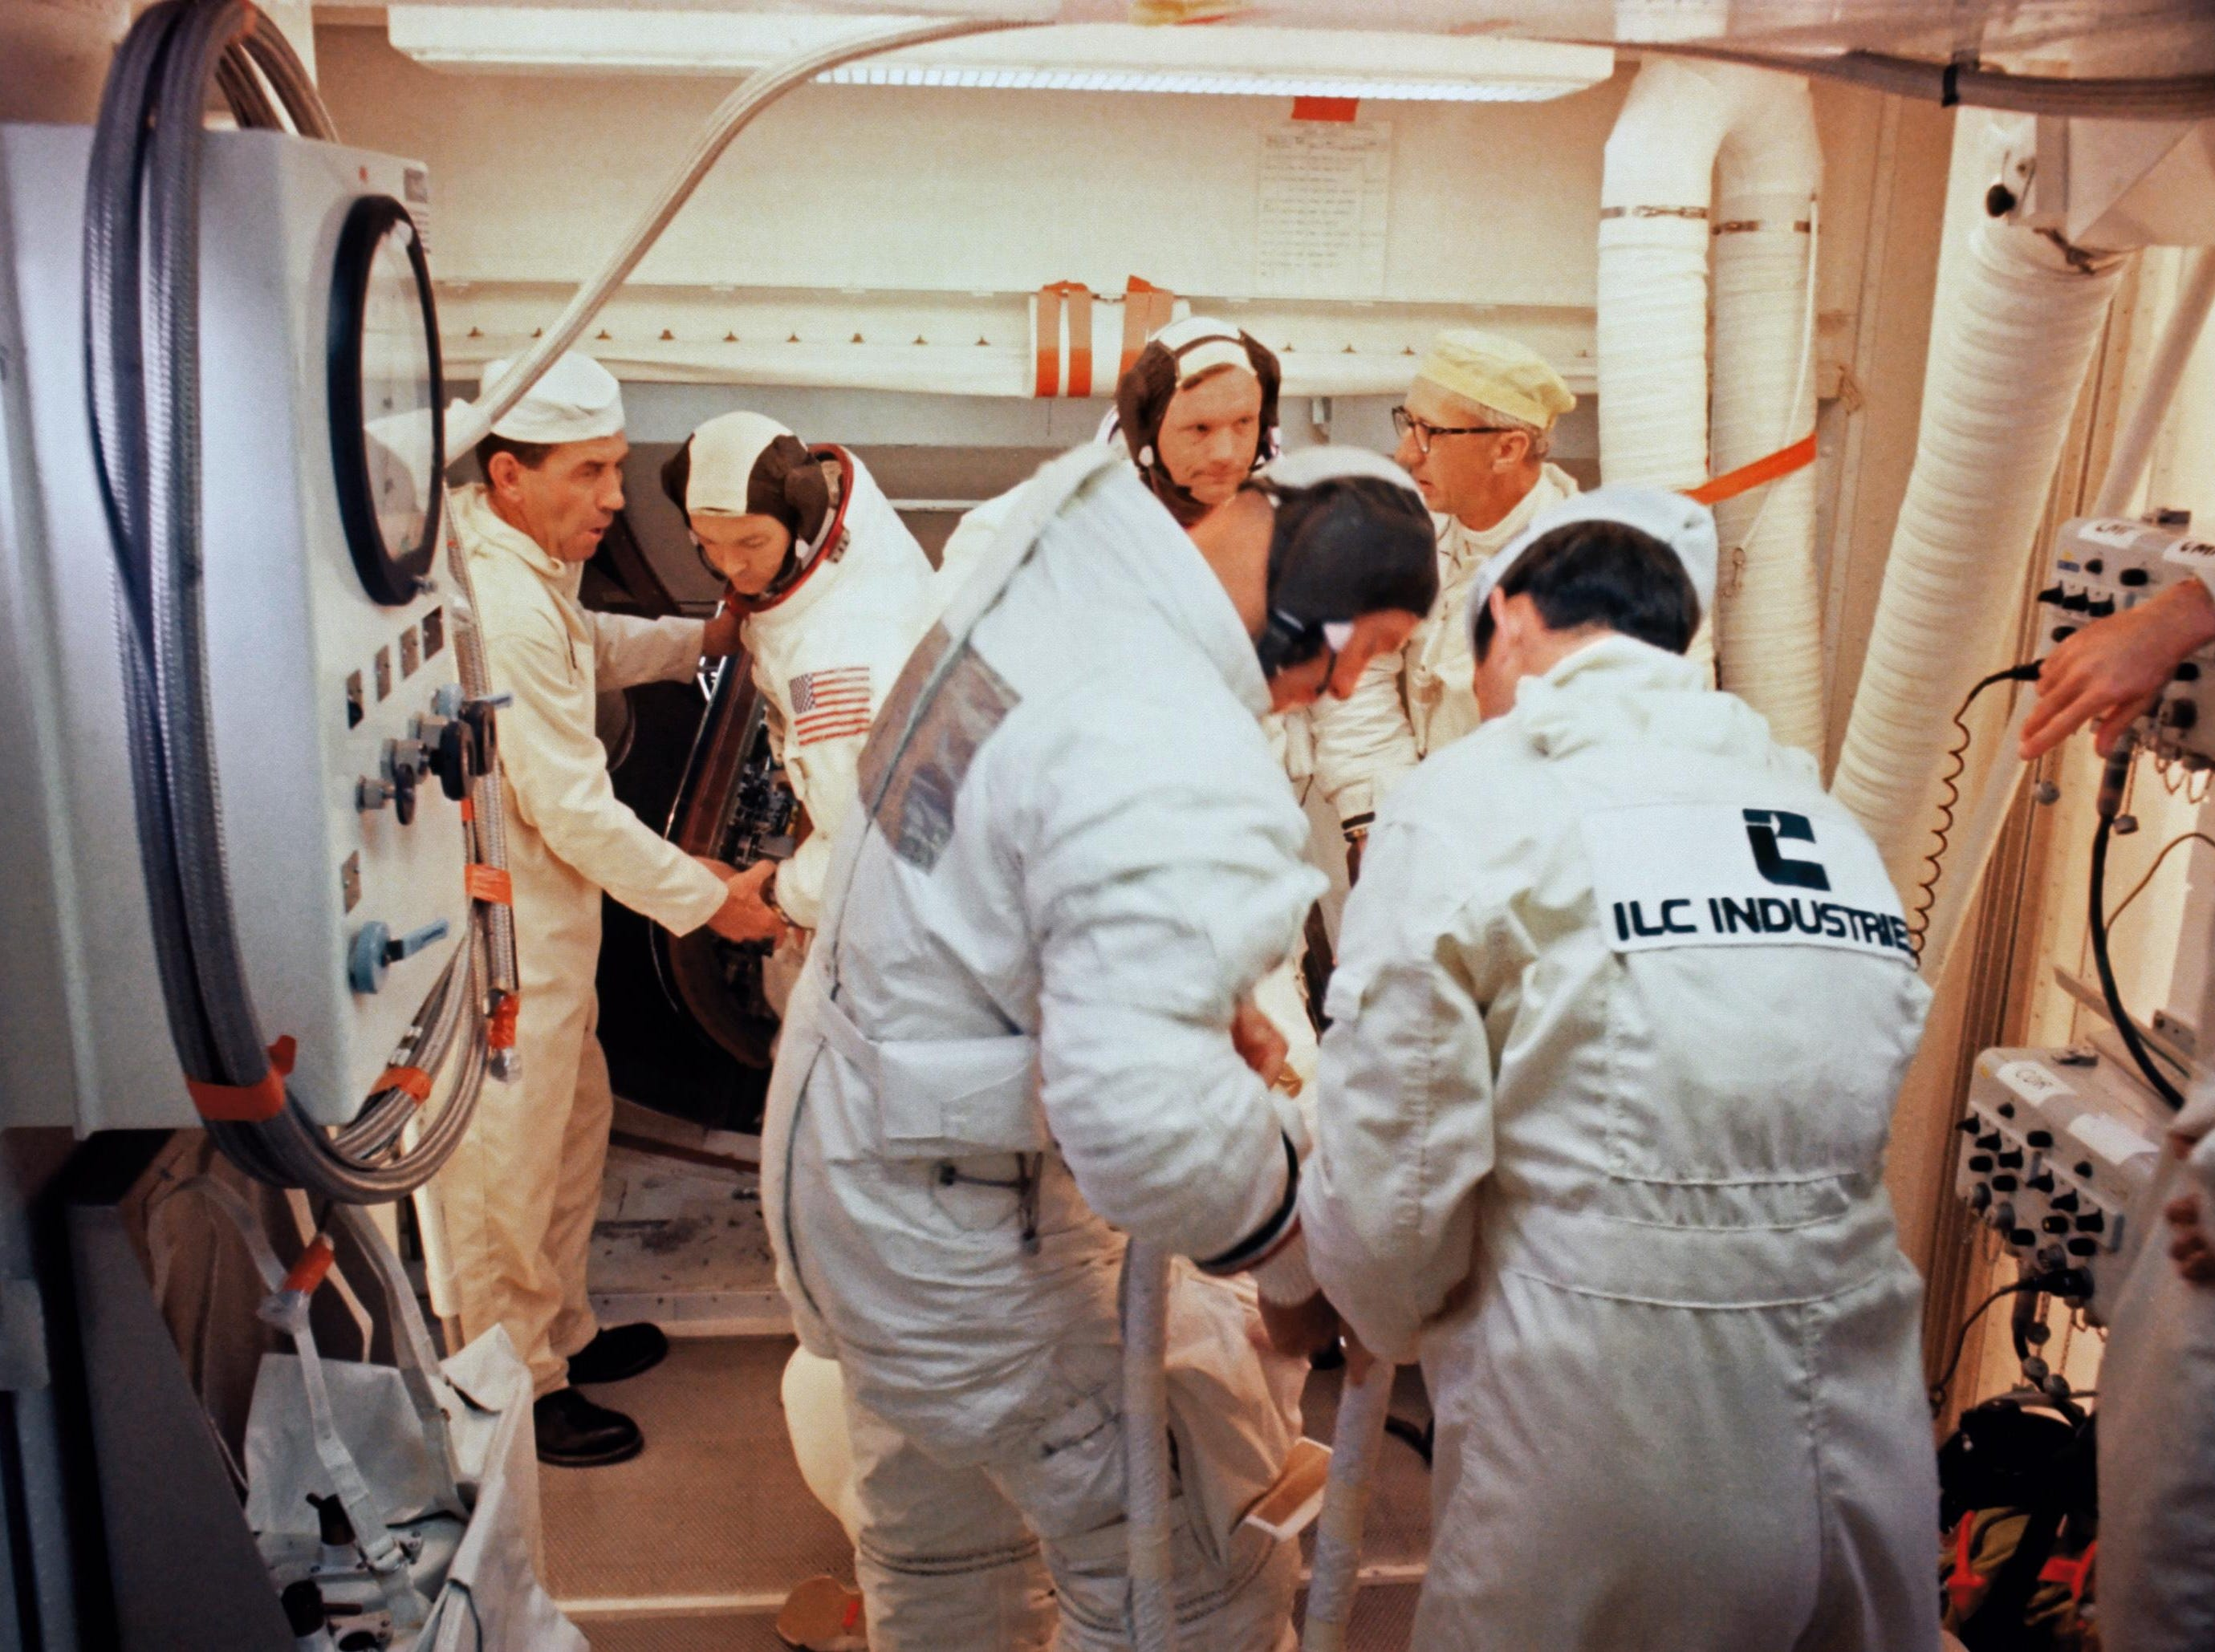 Within the White Room atop the gantry on Launch Complex 39 Pad A, the Apollo 11 astronauts Pad leader Guenter Wendt talks with Neil Armstrong. Astronaut Michael Collins is to the left of Armstrong.